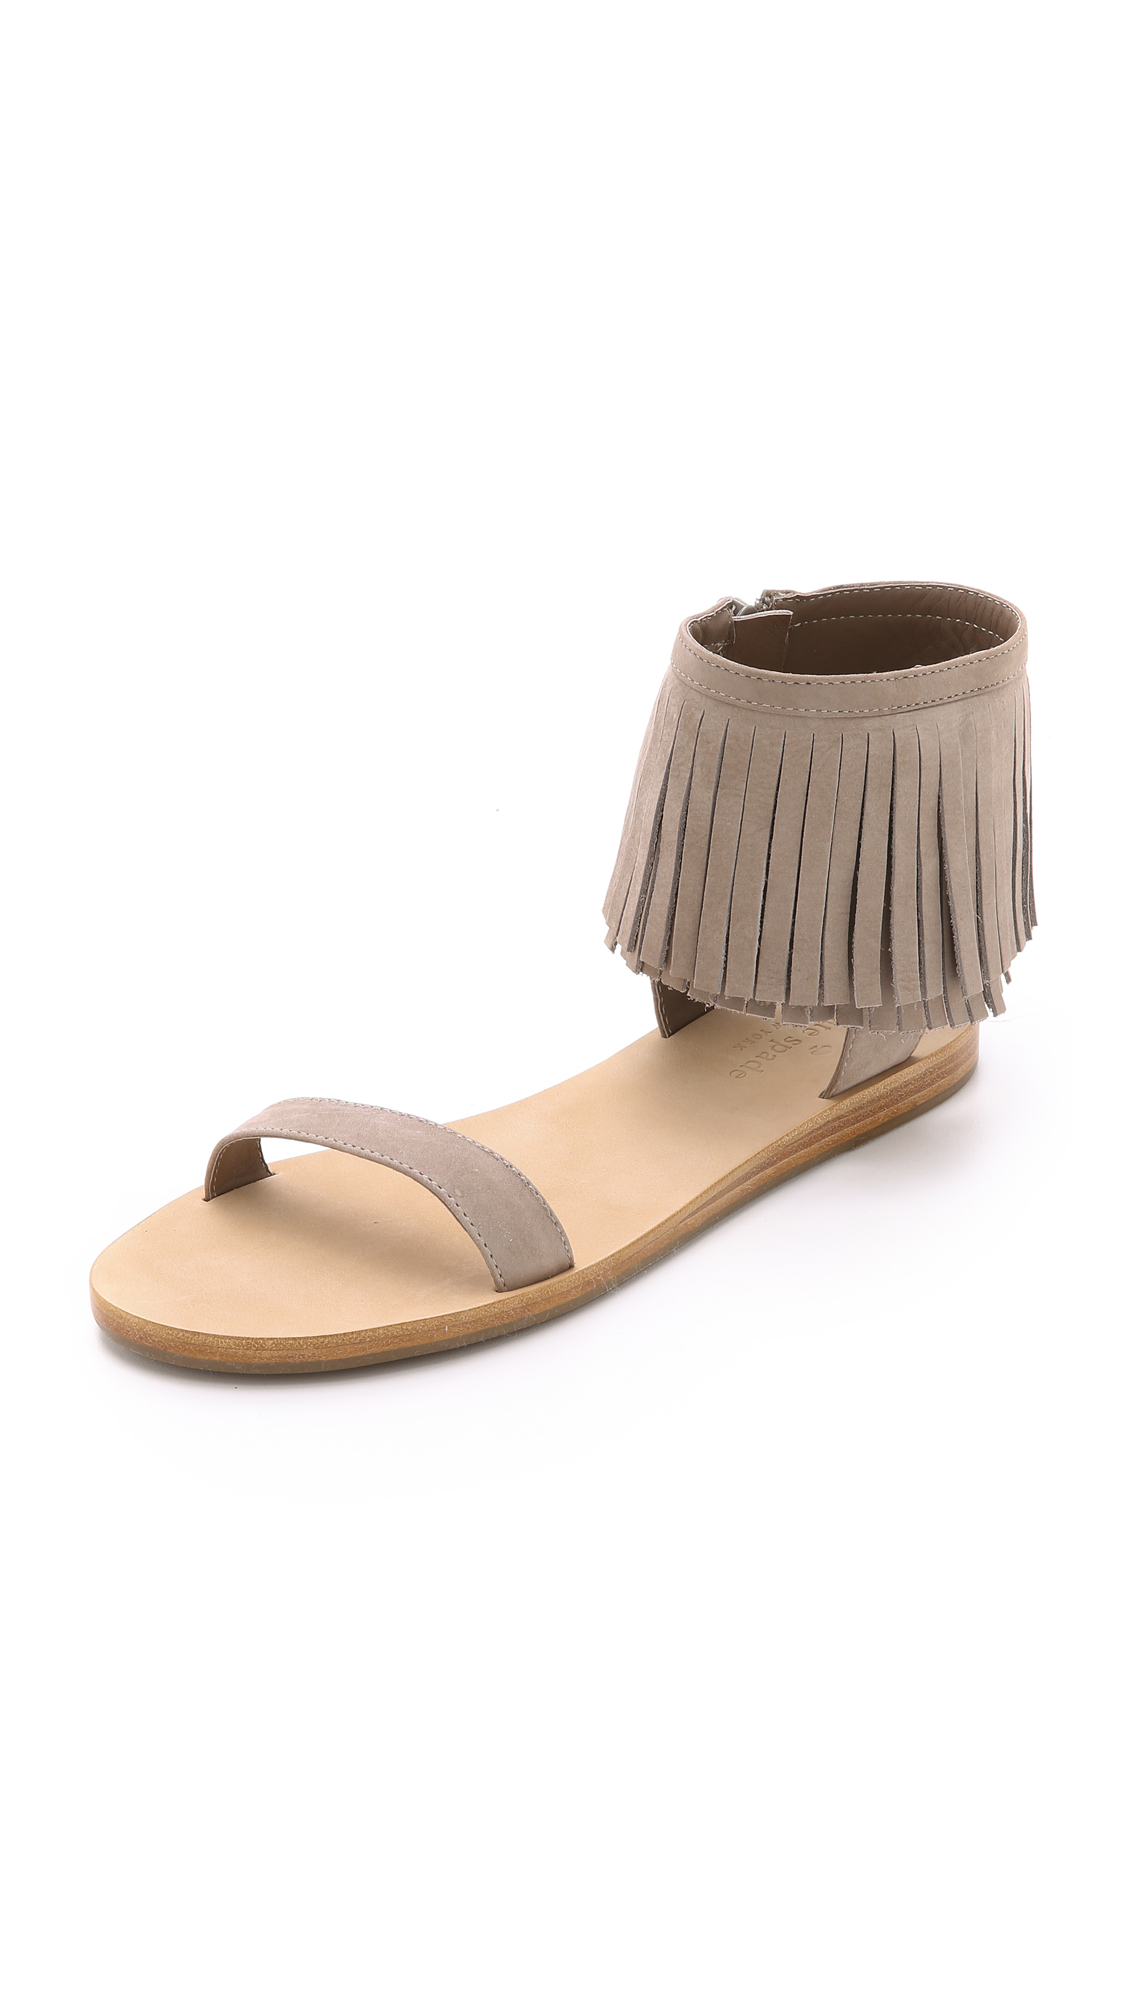 c54ad482019a Lyst - Kate Spade Alex Fringe Sandals - Cherry in Brown